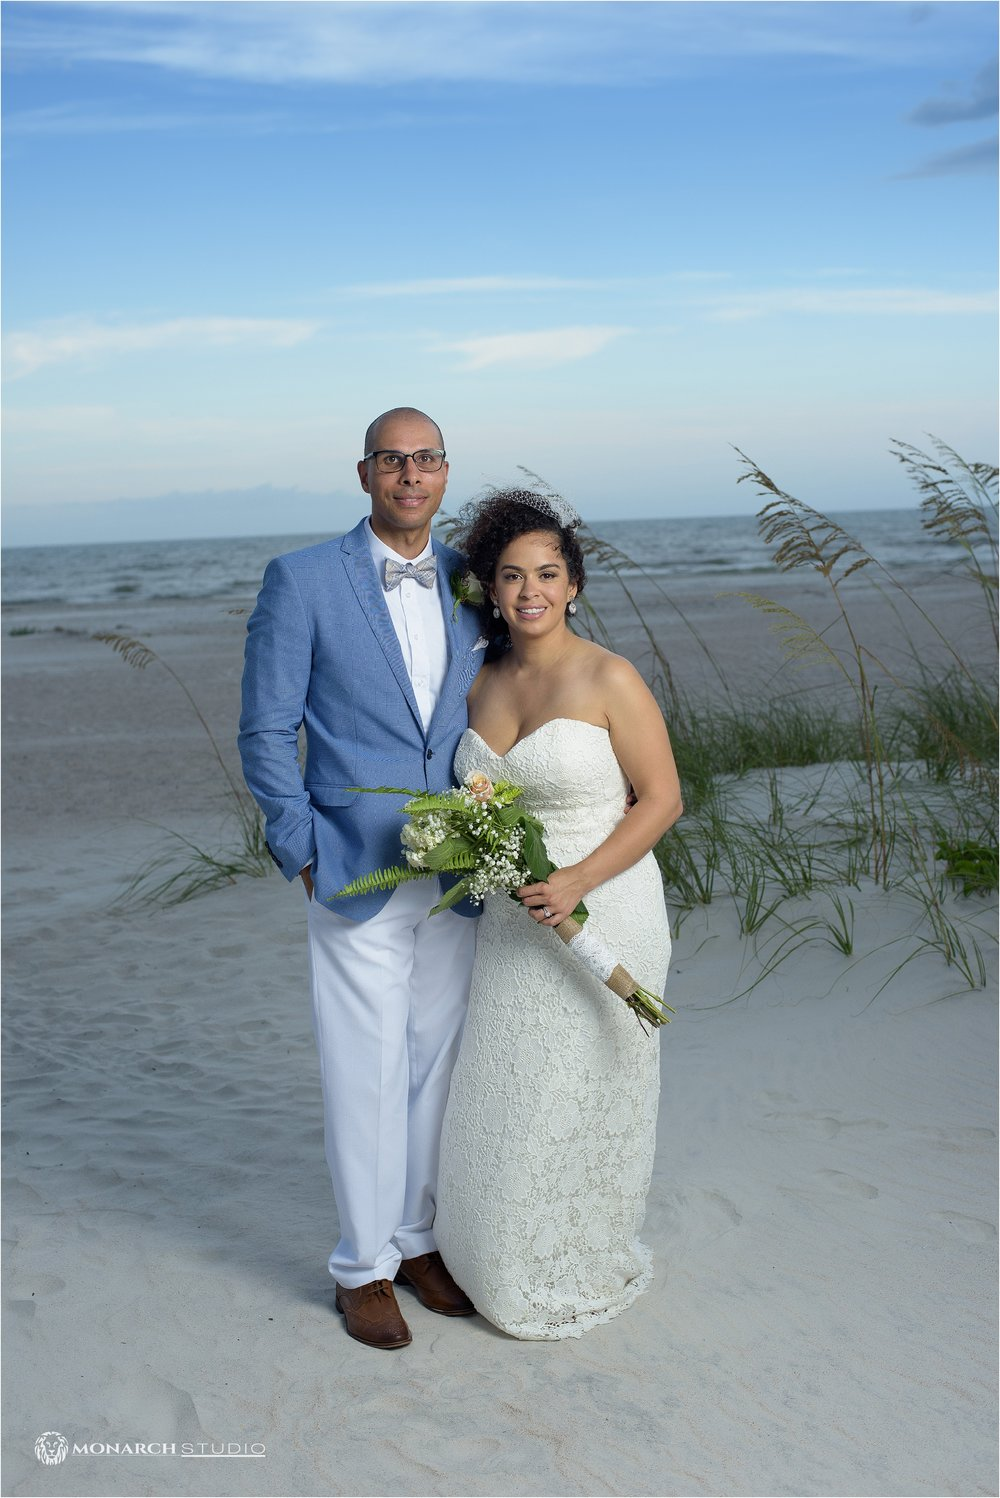 Jason and Vanessa's beautiful Beach Wedding, just before the rain clouds roll in.